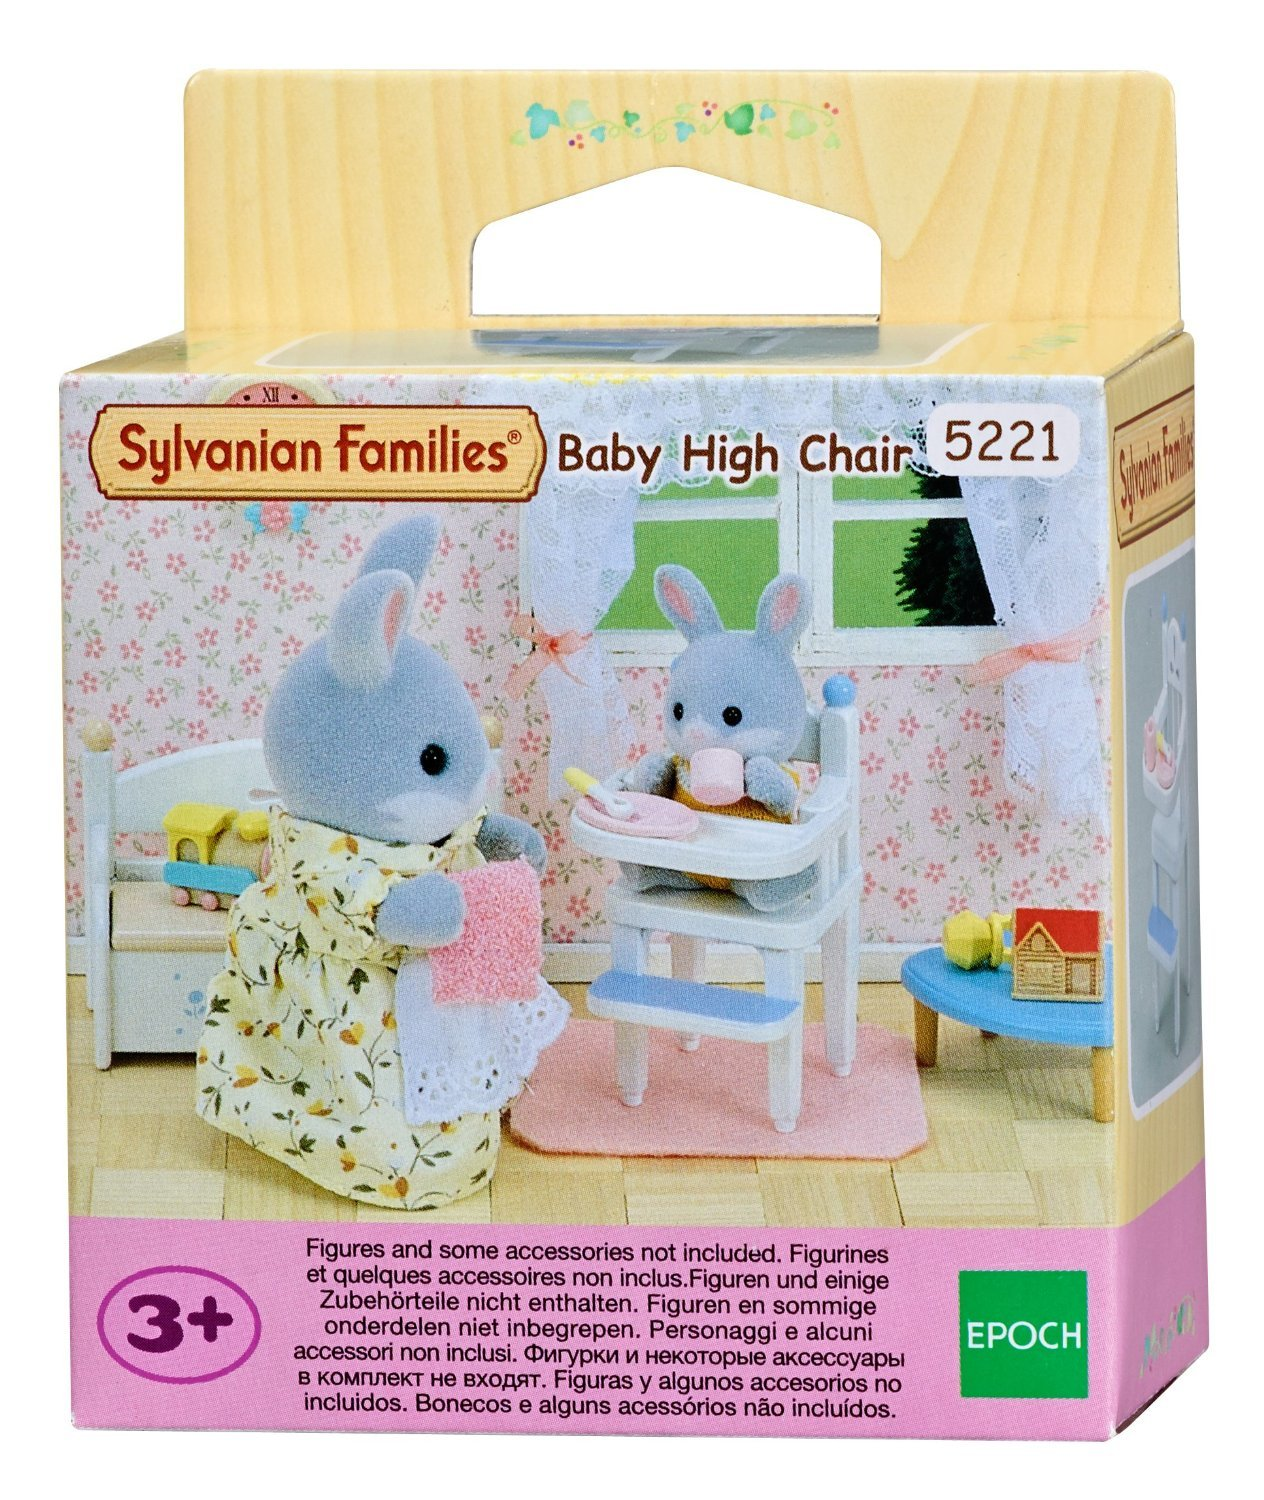 Sylvanian Families: Baby High Chair image